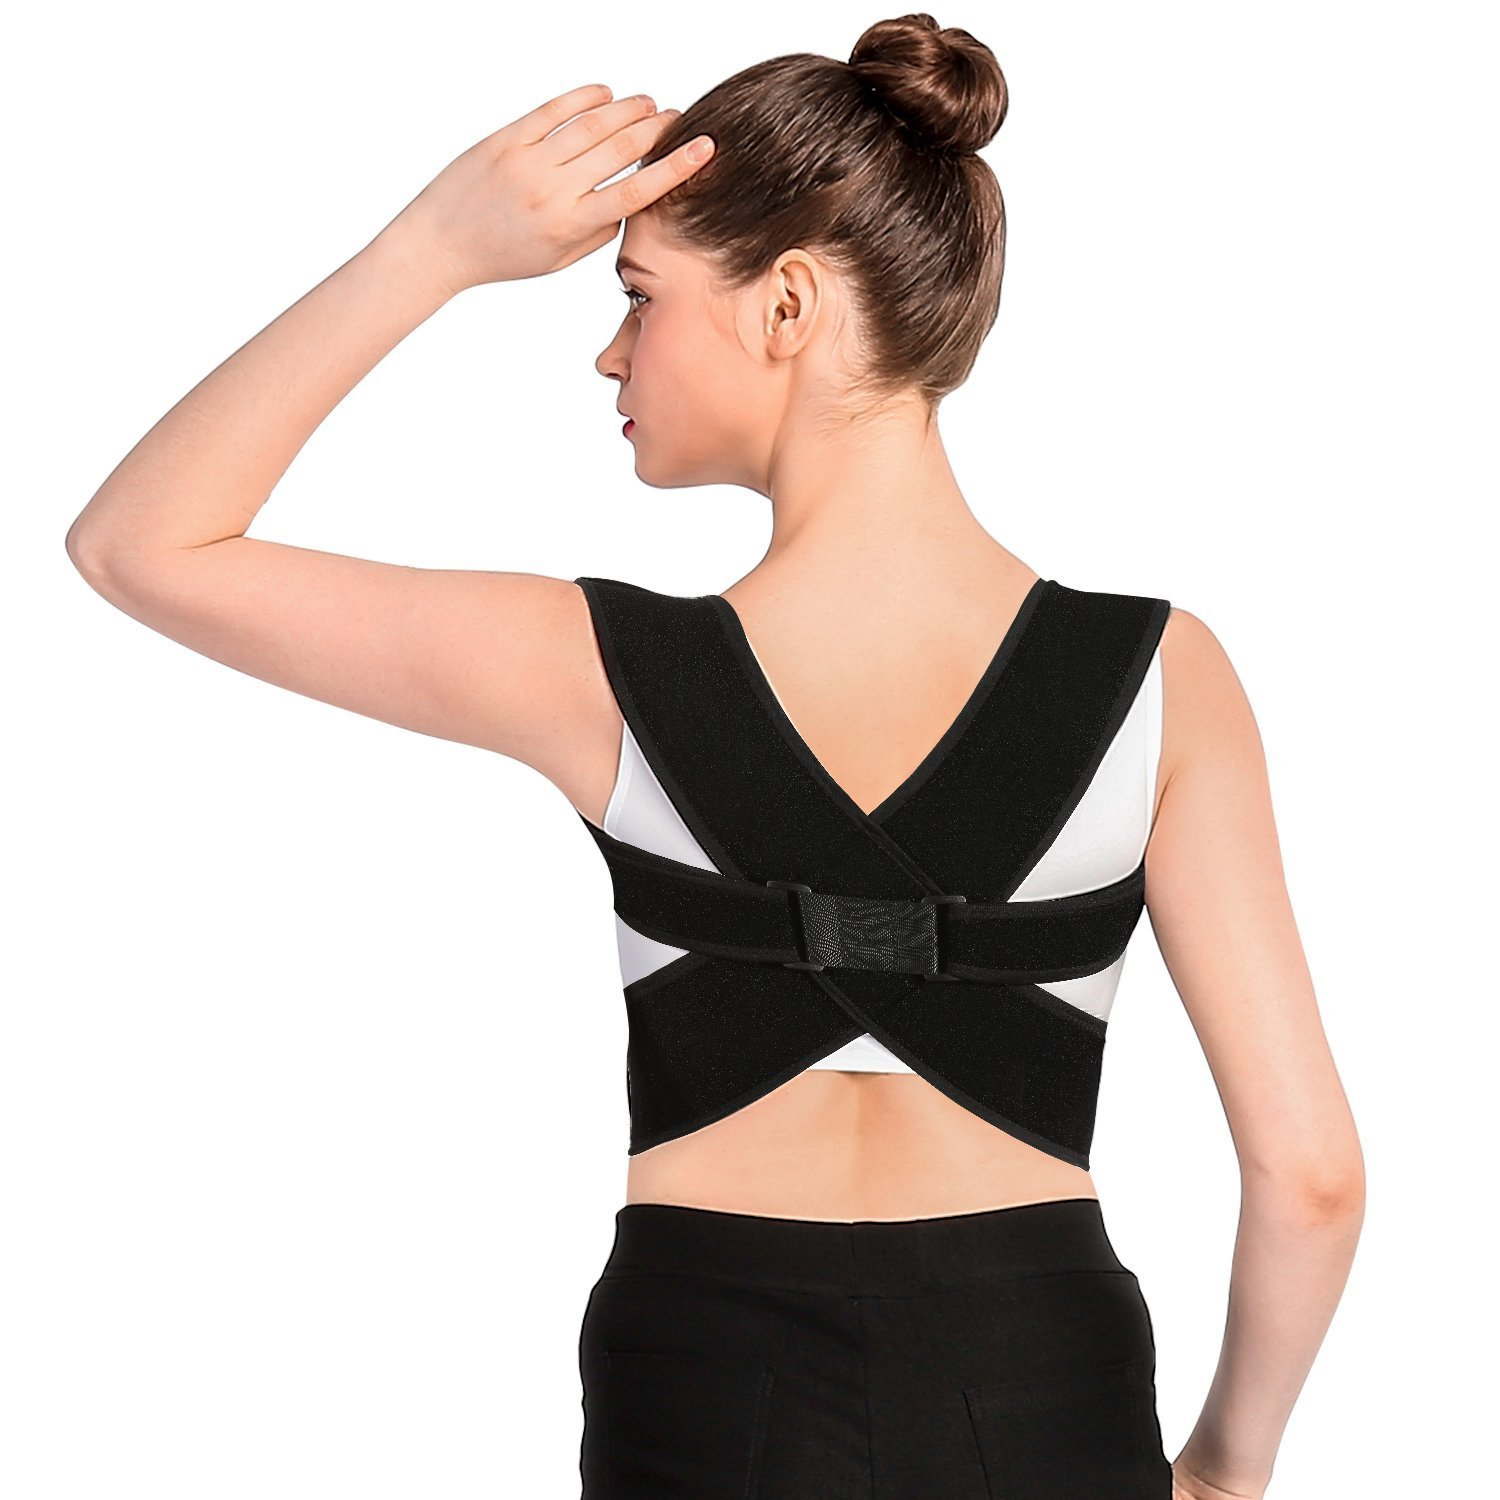 Posture Corrector Brace and Clavicle Support Straightener for Upper Back Shoulder Forward Head Neck Aid, Improve and Fix Poor Posture for Women Men (L(35''-48'' Chest))